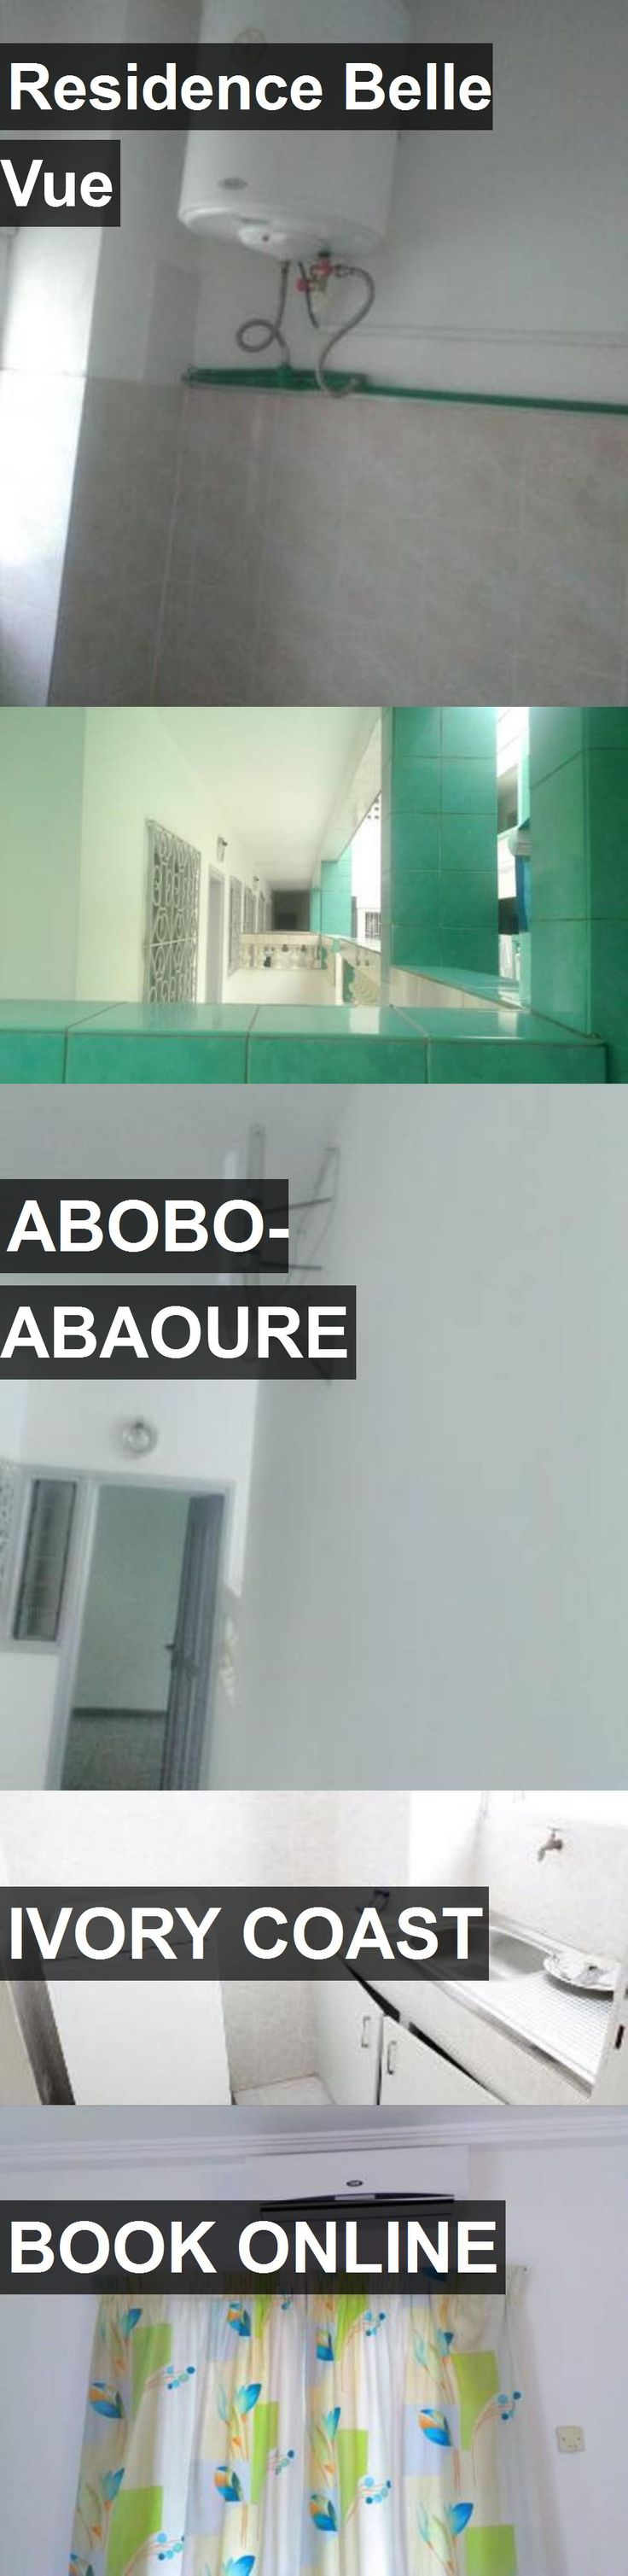 Hotel Residence Belle Vue in Abobo-Abaoure, Ivory Coast. For more information, photos, reviews and best prices please follow the link. #IvoryCoast #Abobo-Abaoure #travel #vacation #hotel